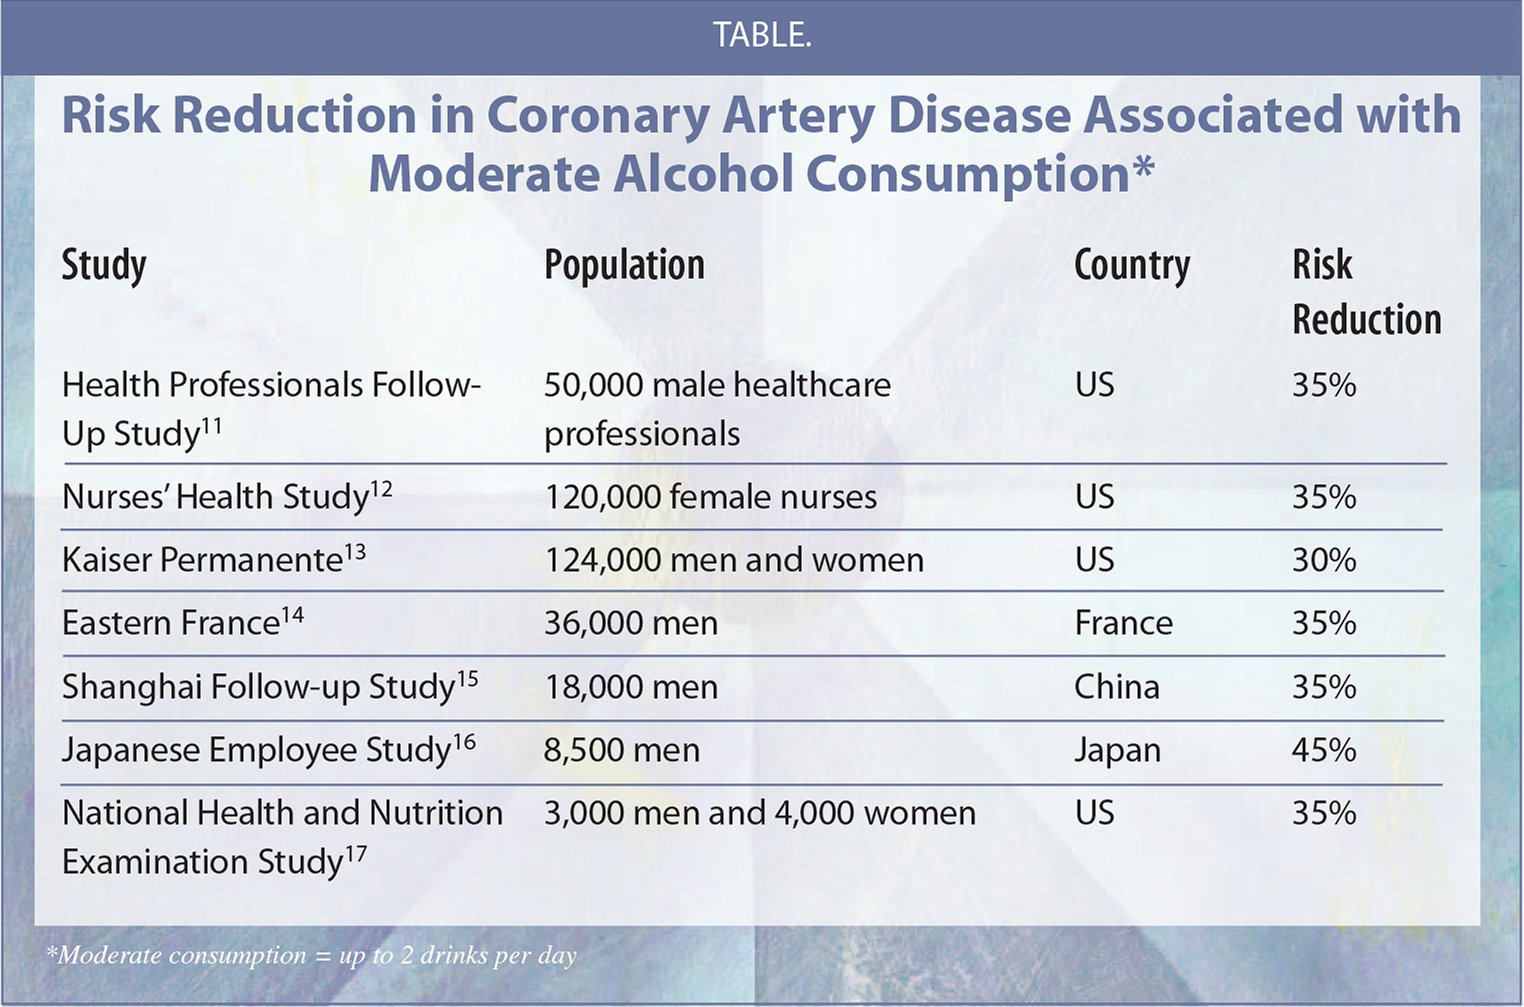 Risk Reduction in Coronary Artery Disease Associated with Moderate Alcohol Consumption*